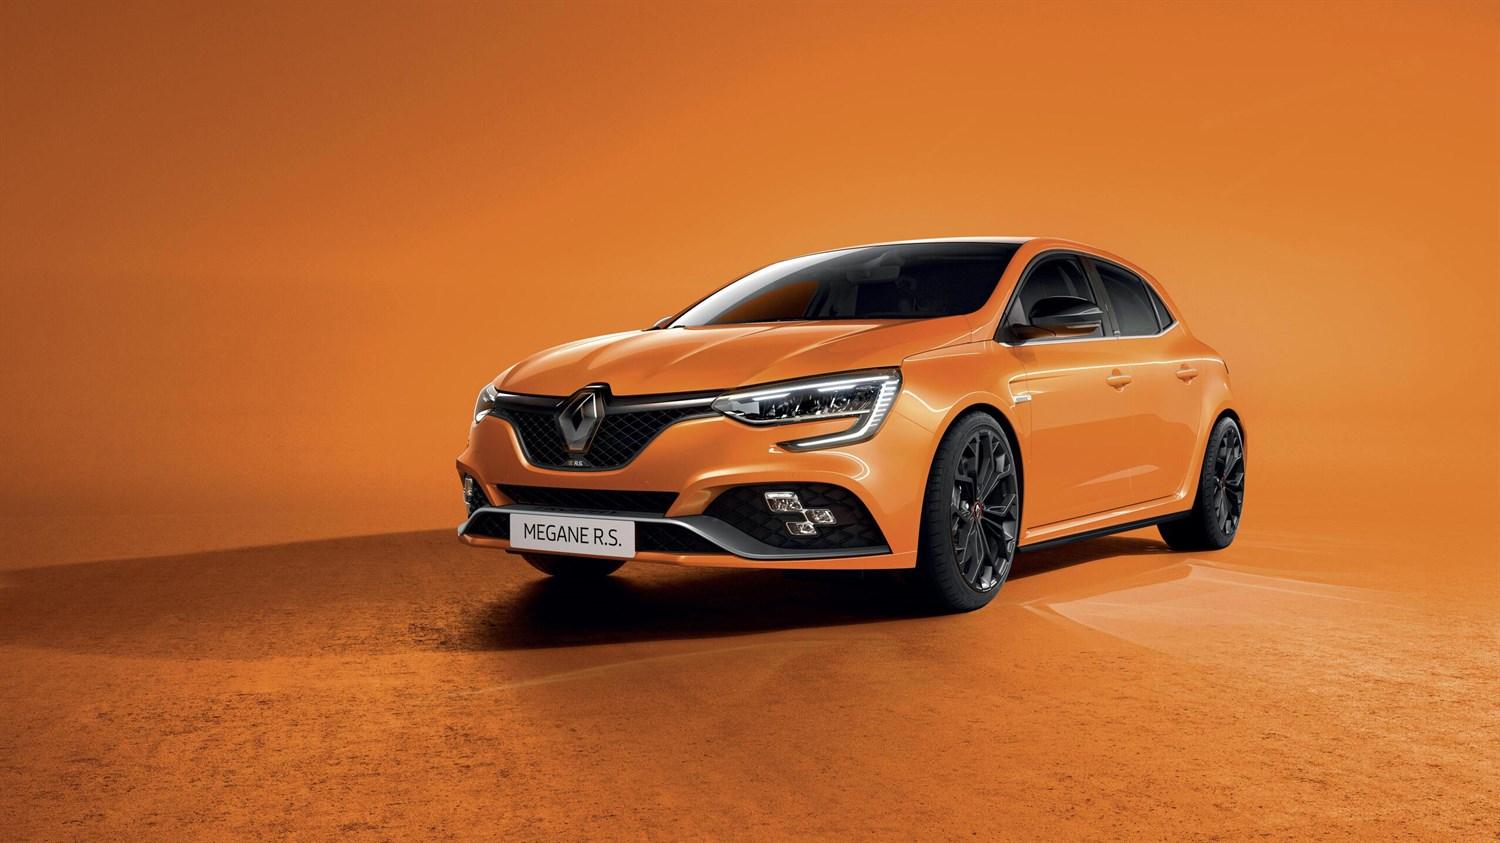 Renault resurrected the Alpine badge four years ago to put it on sports cars, but the role of the sub-brand will continue to grow in the coming years.